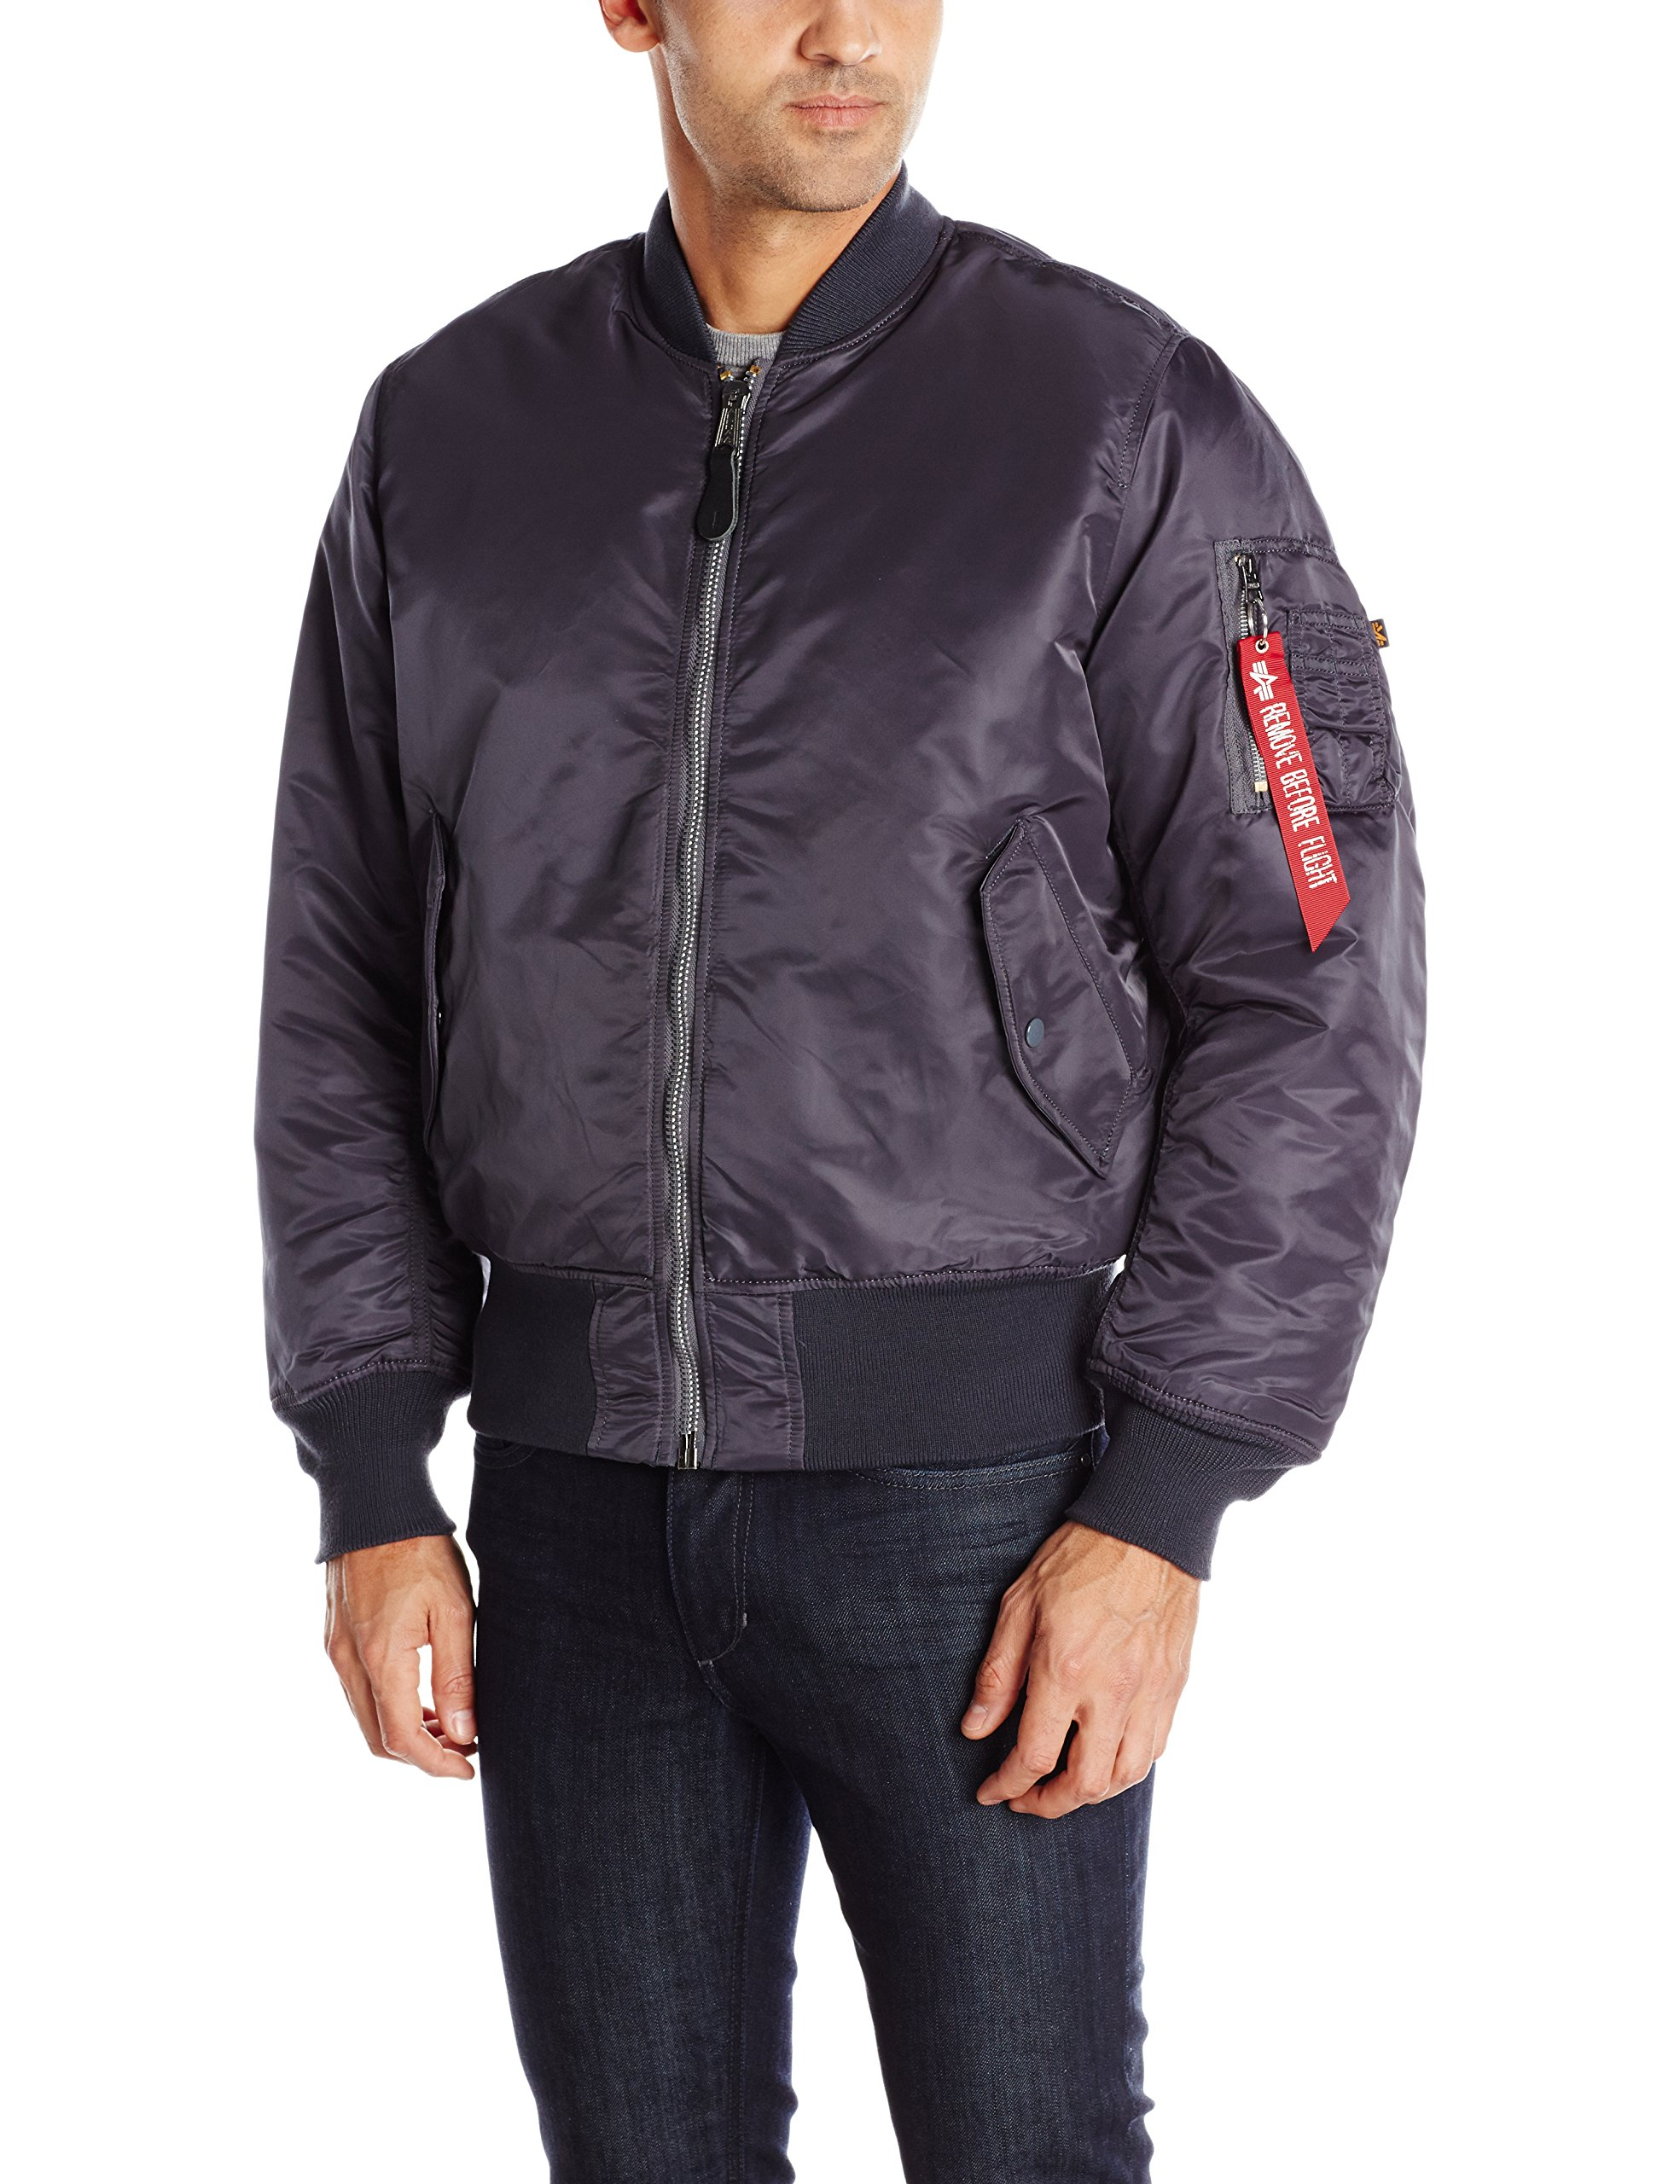 Alpha Industries Men's MA-1 Bomber Flight Jacket, Steel Blue, Large by Alpha Industries